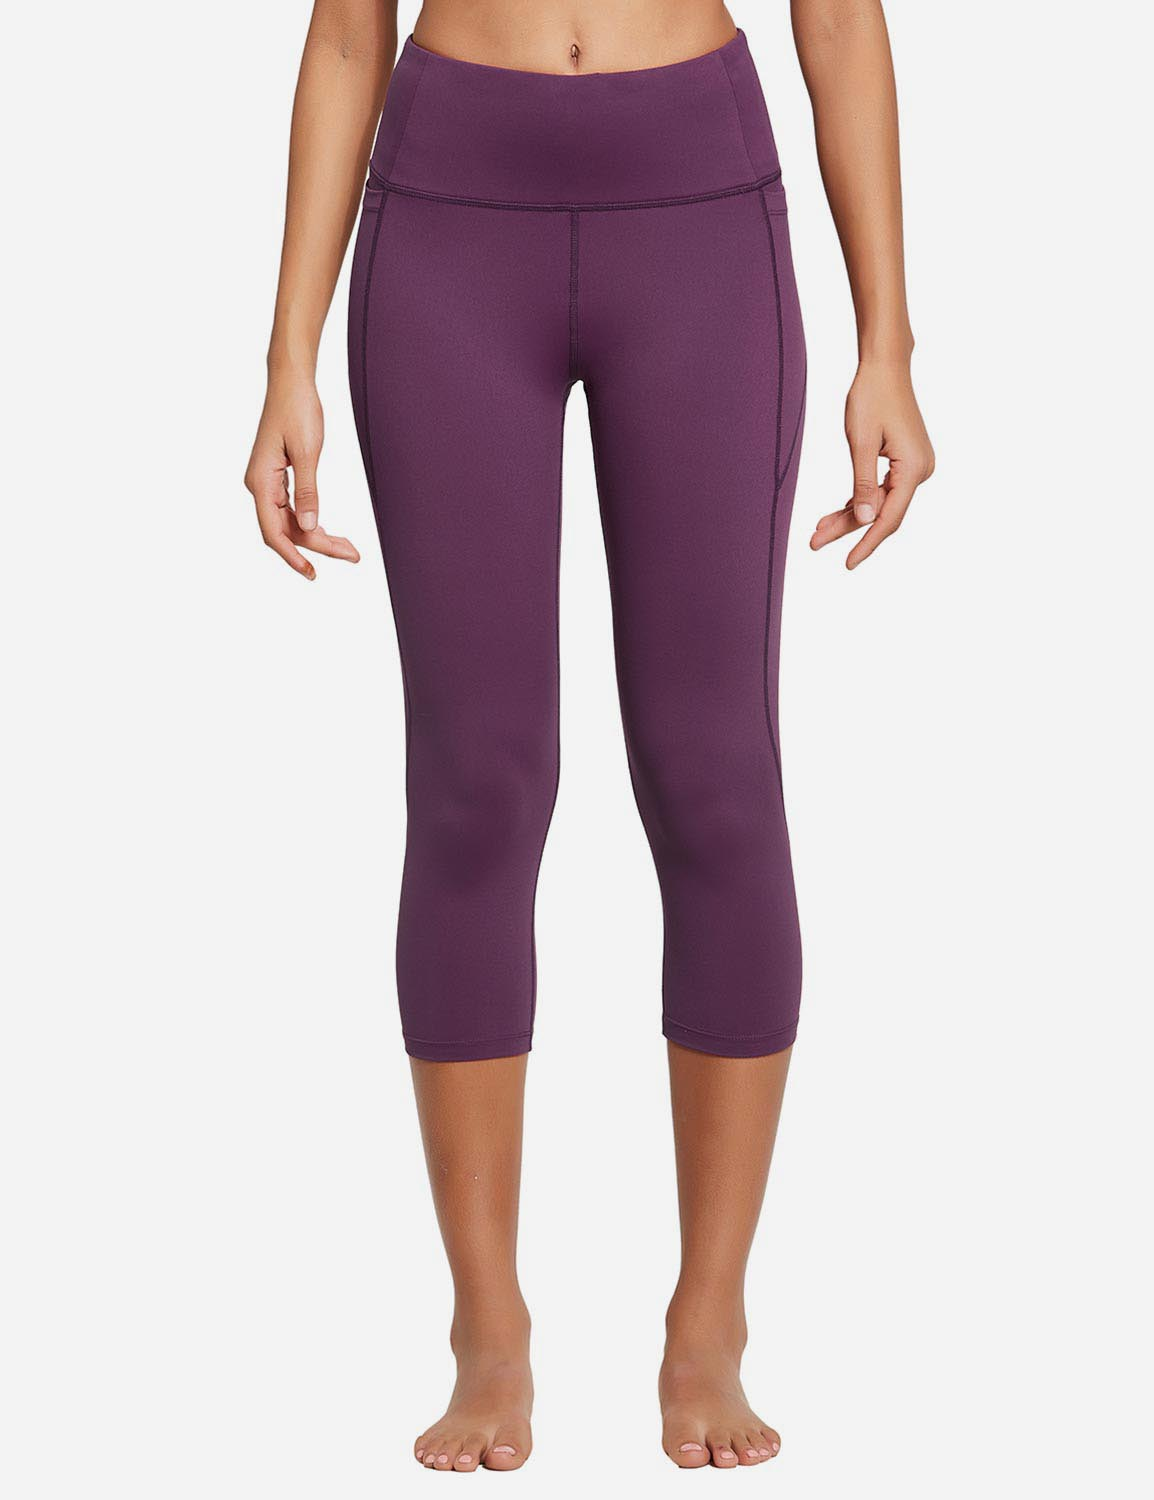 Baleaf Womens High Rise Bottom Contour Pocketed Capris Dark Magenta Front